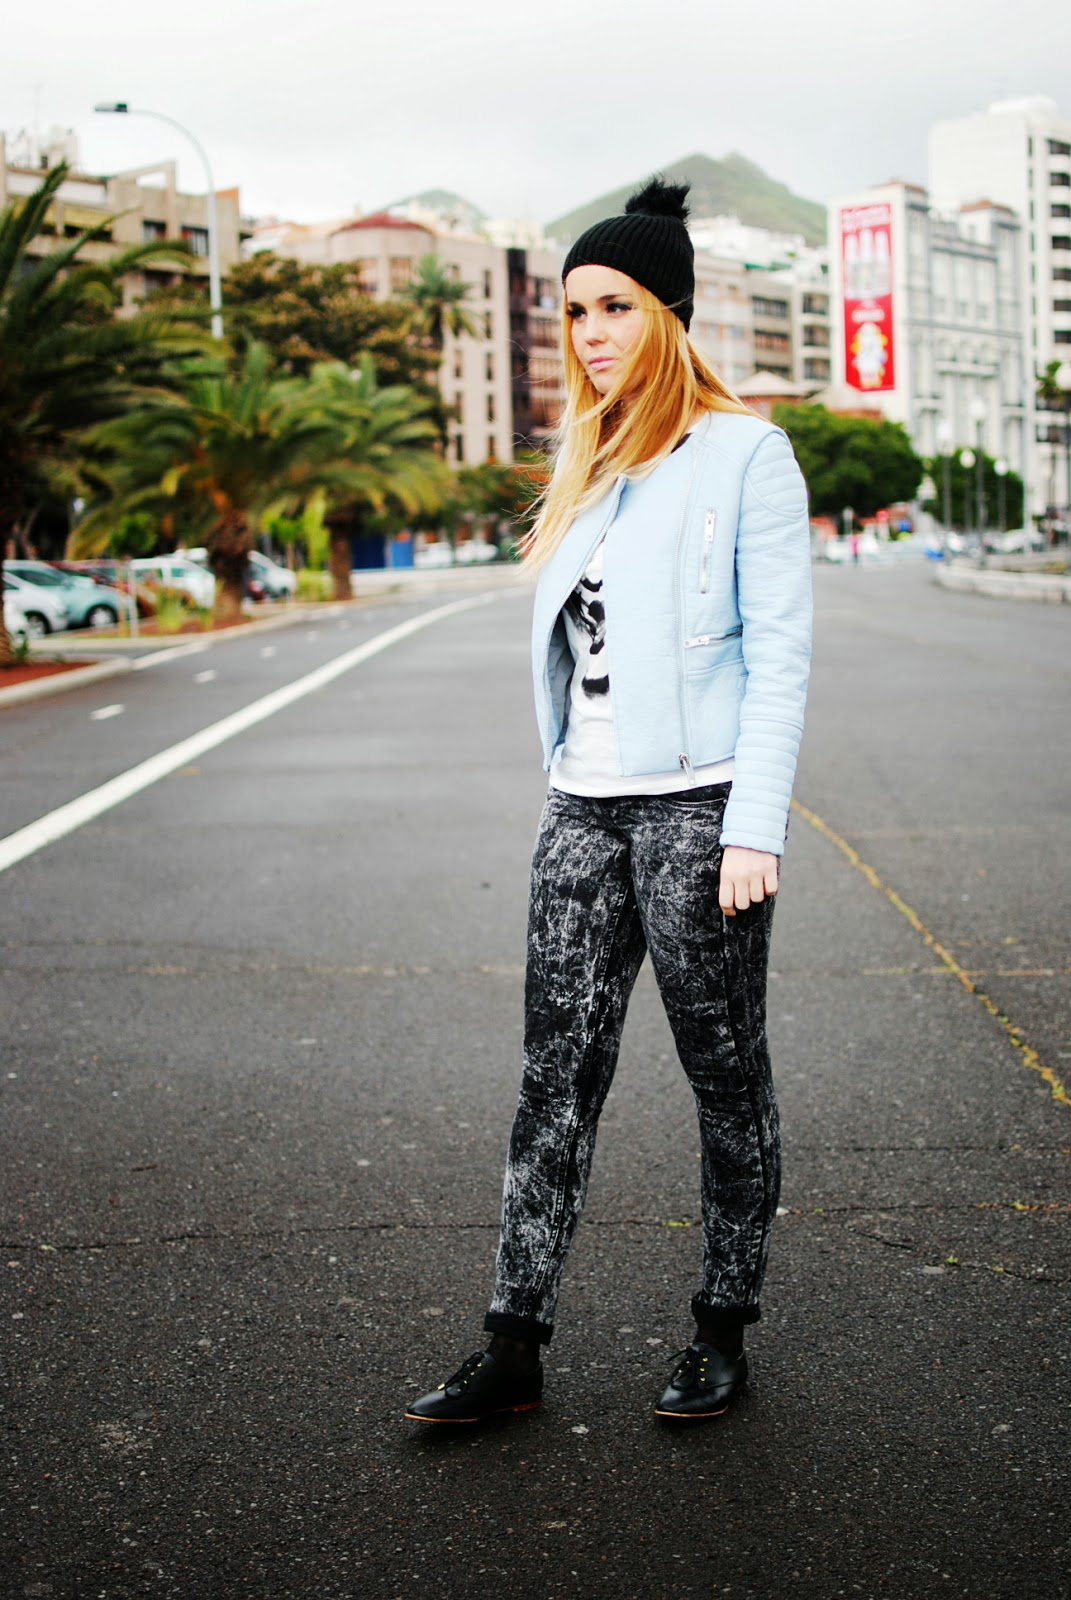 nery hdez, vjstyle, beanie, oxford shoes, blue biker, baby blue, tie-dye